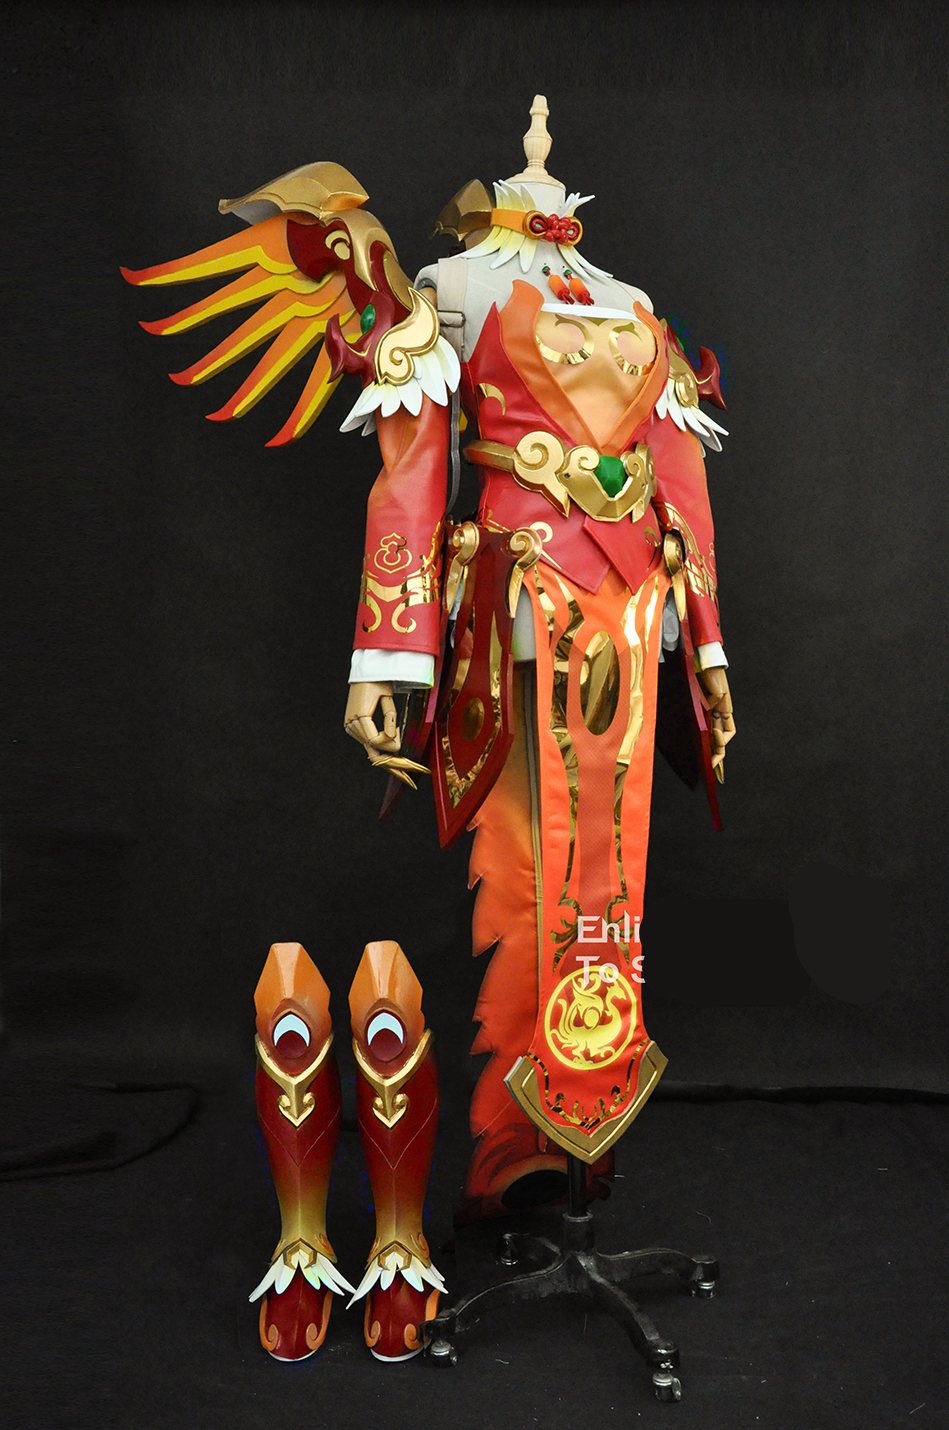 OW Mercy Angela Ziegler Mercy new skin Suzaku mercy cosplay costume custom made/size Full Set mercy outfit and prop 1